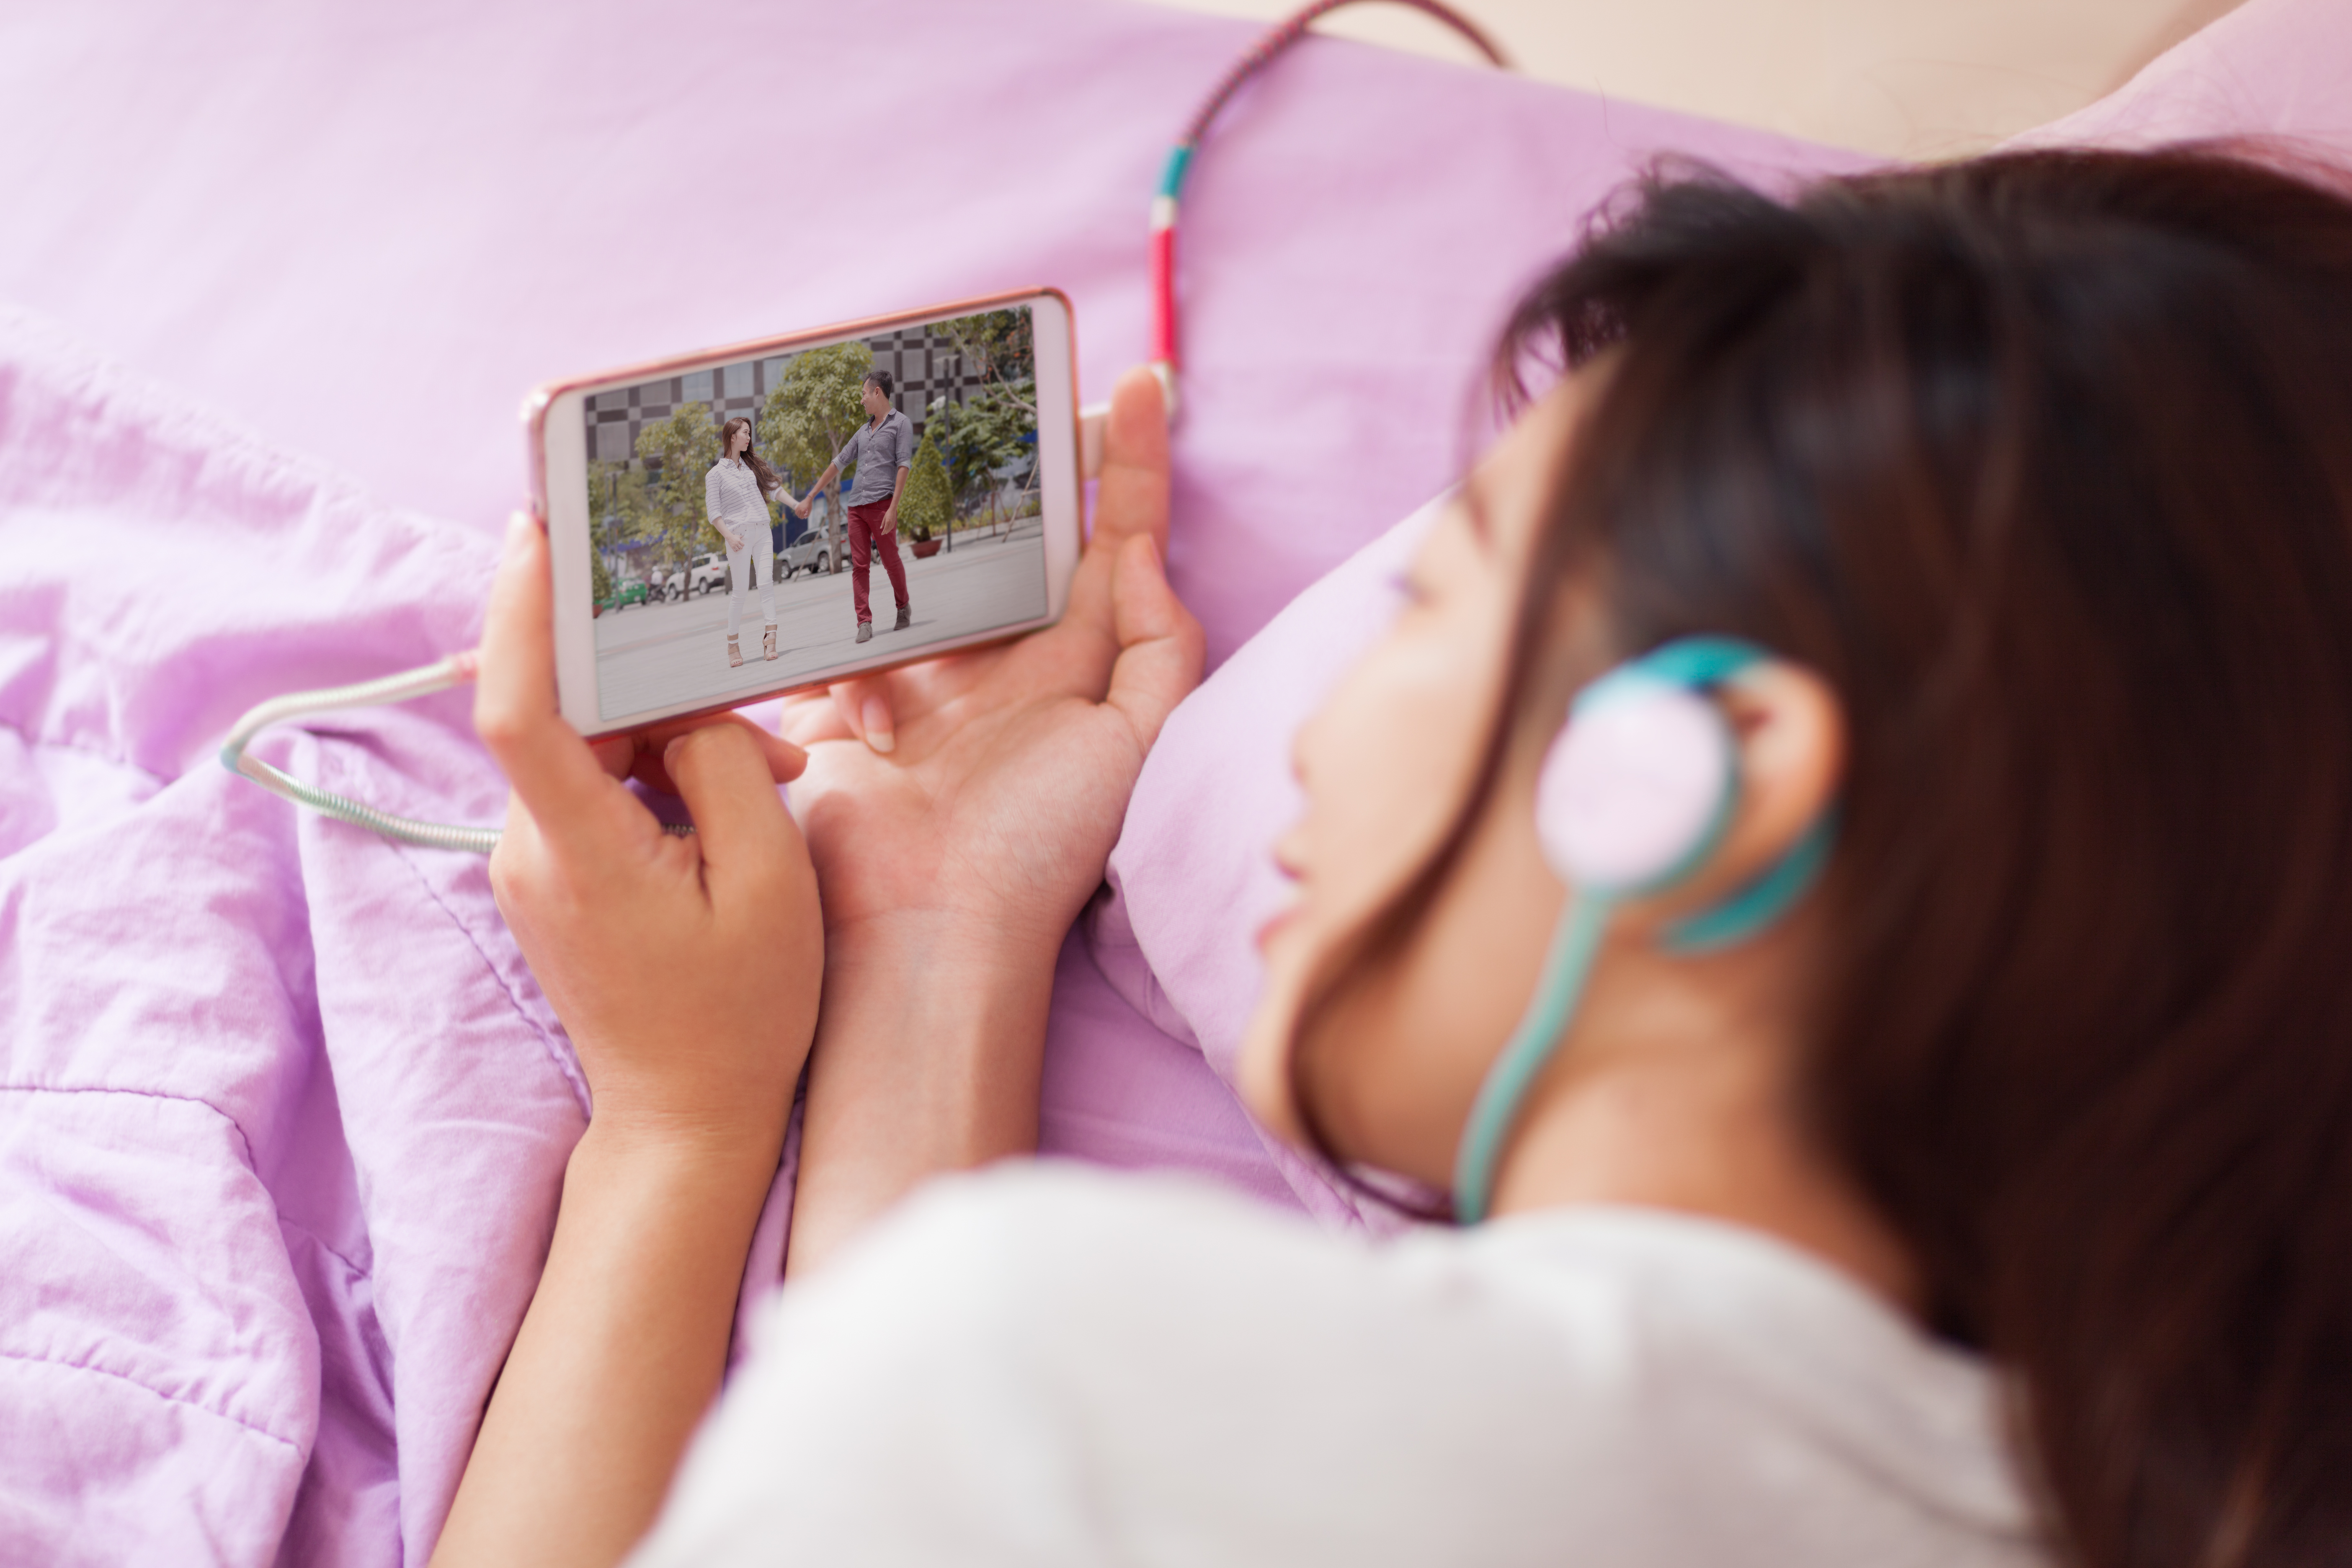 Girl_Watching_Mobile_Video_Smart_Phone_with_Headphones